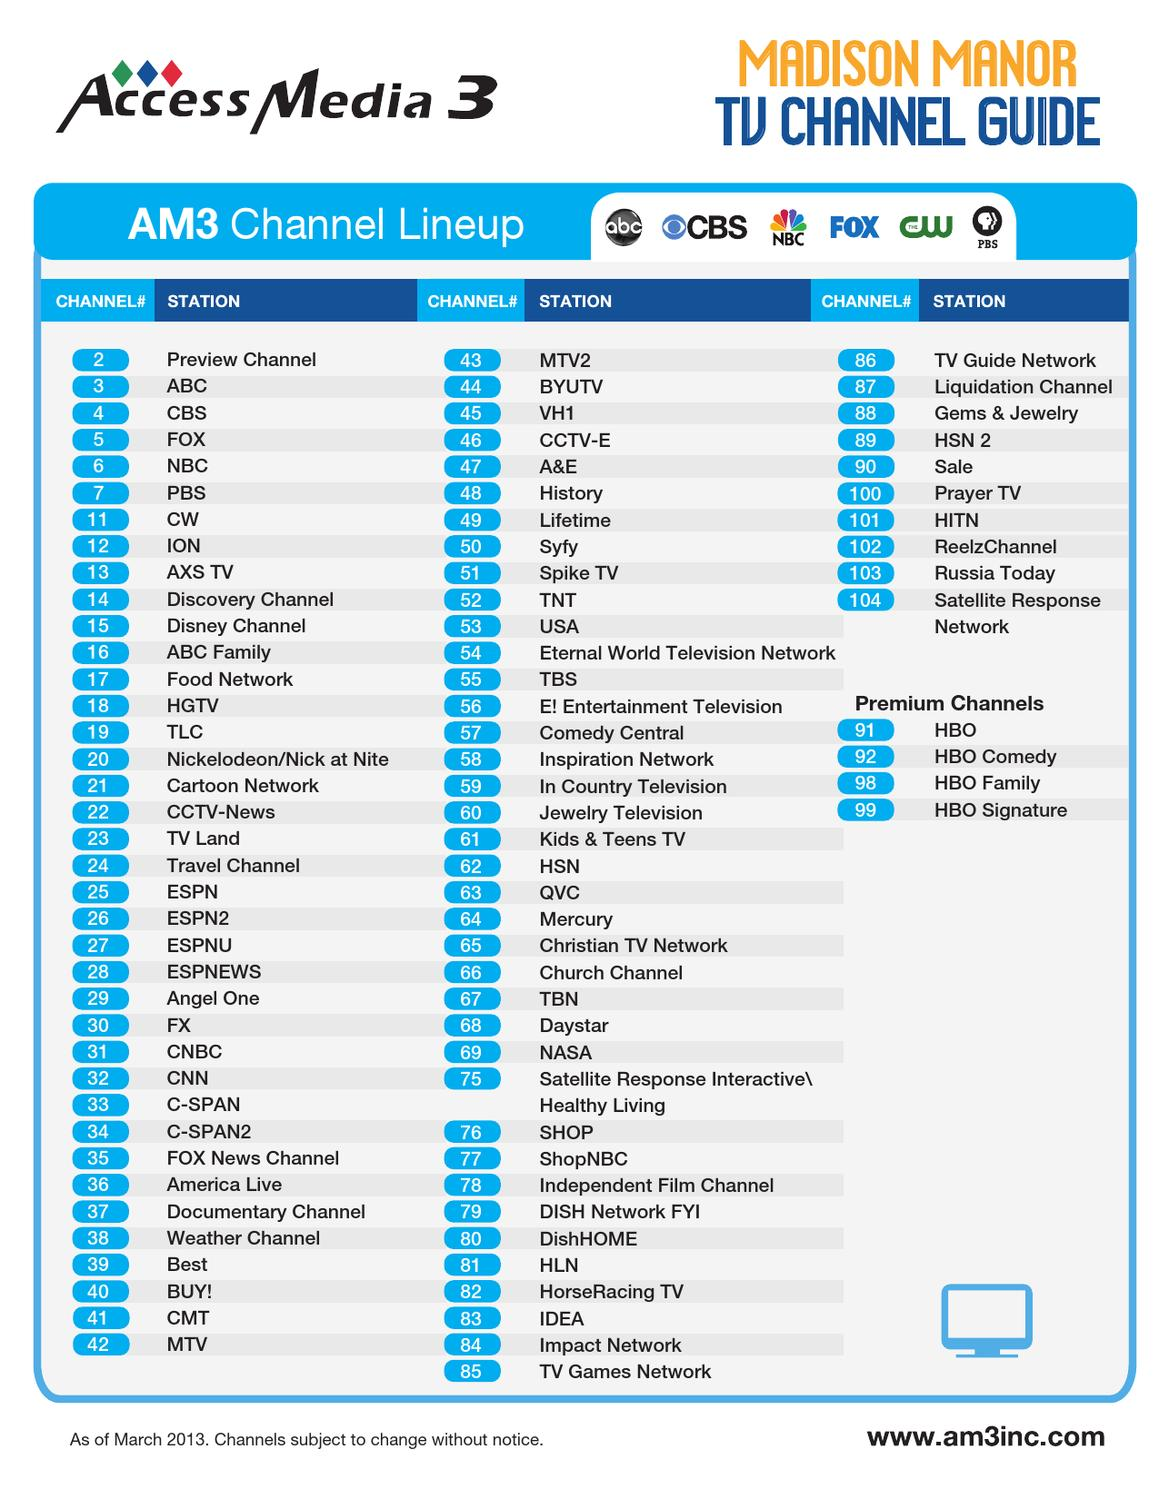 AM3 Channel Guide by AMBER Alwin - Issuu